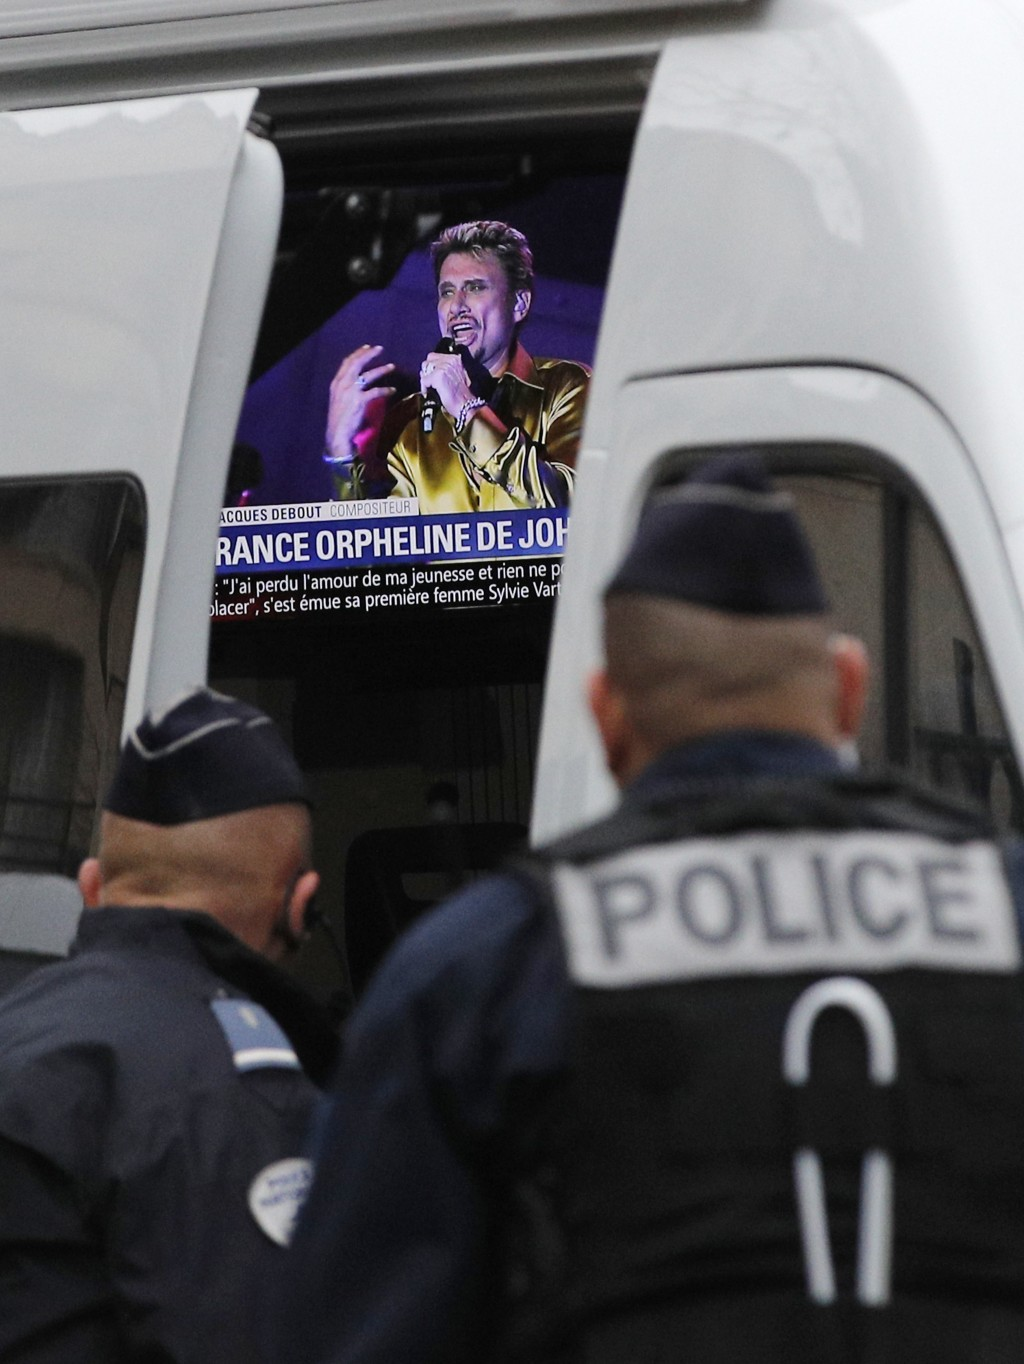 French police officers watch a television set up in a police car and airing a tribute to Johnny Hallyday, outside Johnny Hallyday's house in Marnes-la